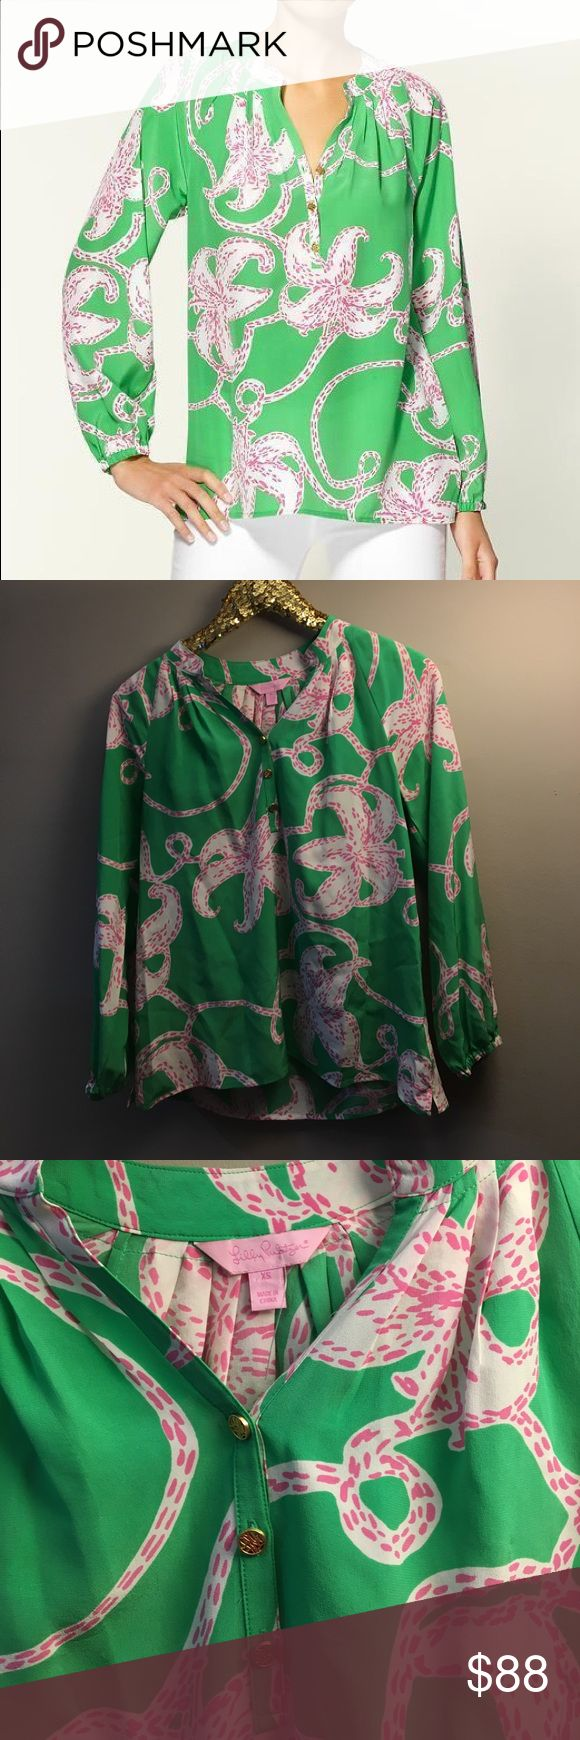 Lilly Pulitzer Elsa Top EUC The Lilly Pulitzer® Elsa Top is like no other. Printed blouse in fluid silk crepe de chine. Loose fit. Elastic smocking encircles the flat collar. Shirring falls from the smocked inset. Split neck and three-button placket. Gold-tone logo buttons. Gathered cuff on the long blouson sleeves. Side vents. Pullover design. 100% silk. Lilly Pulitzer Tops Blouses